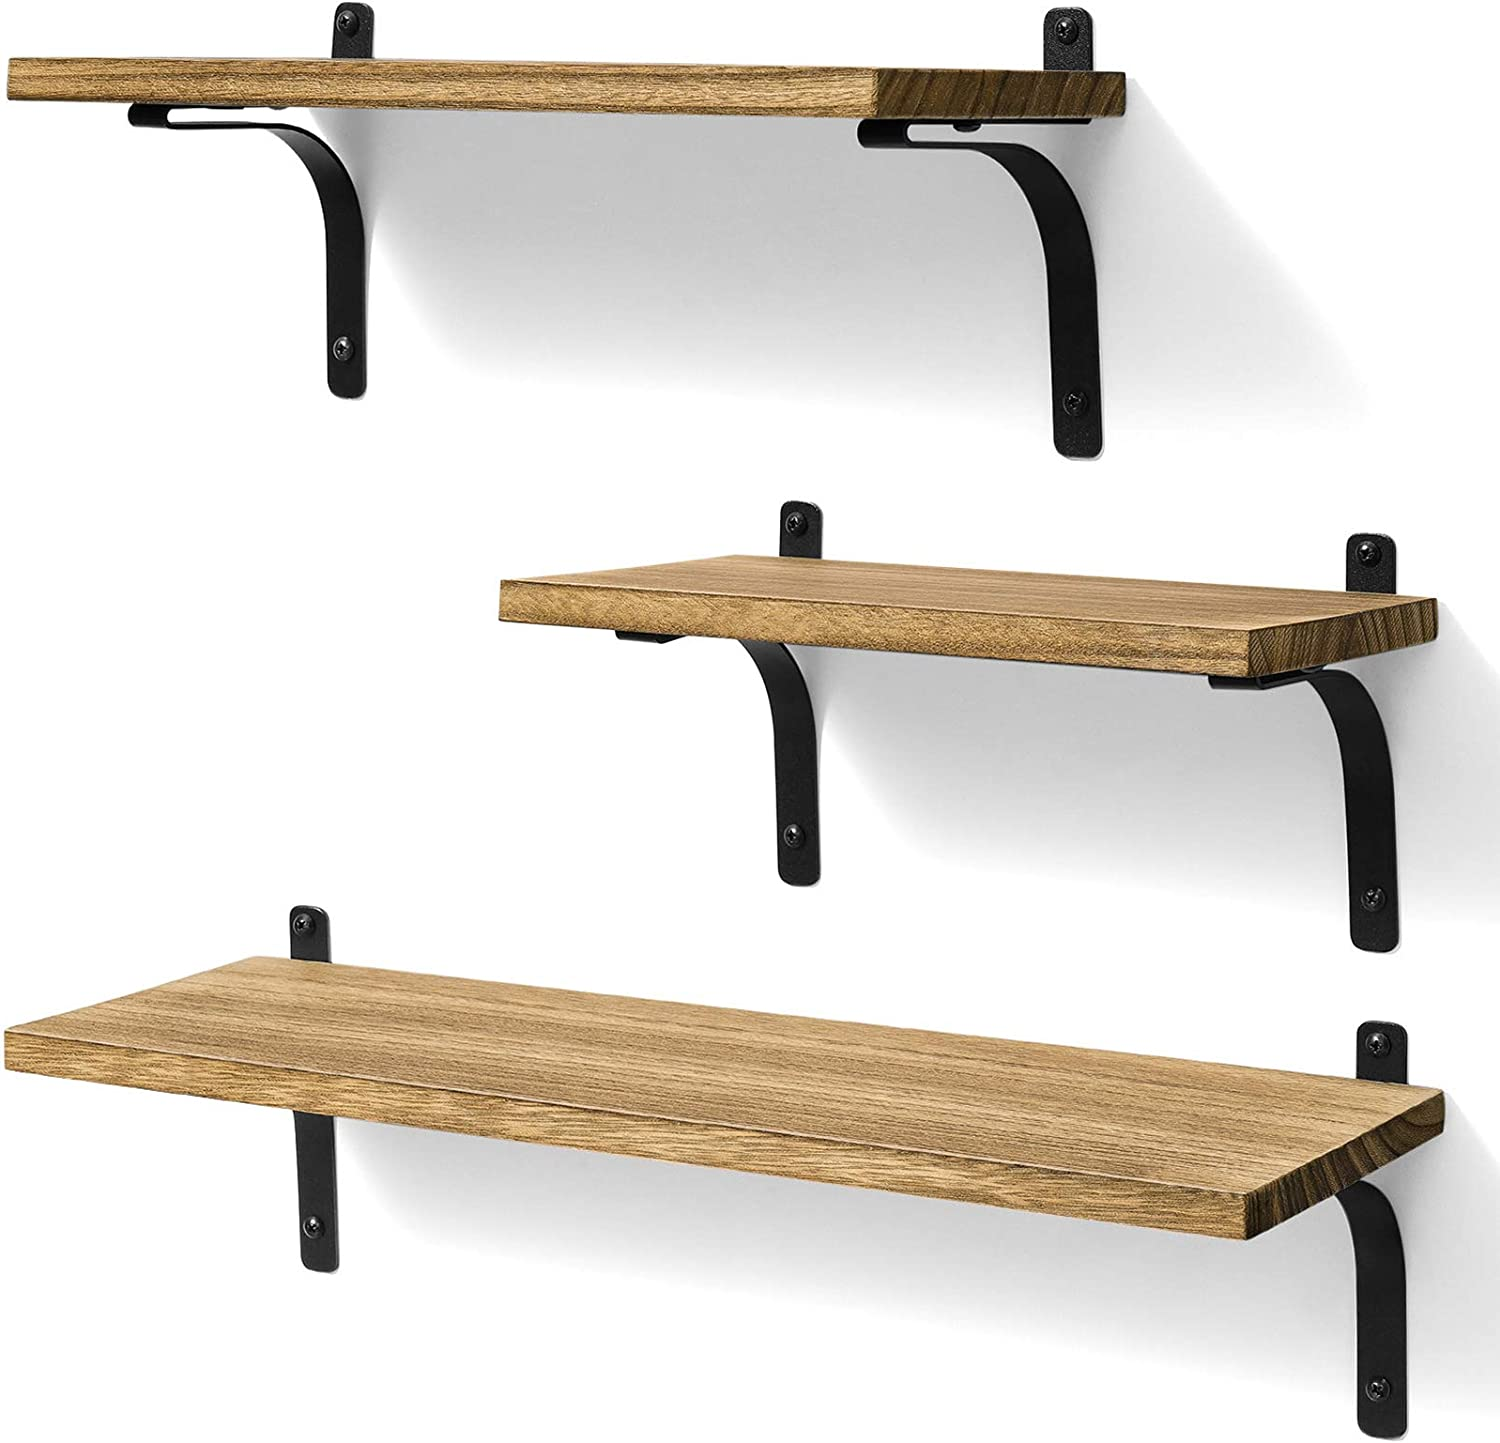 Ophanie Floating Shelves Wall Mounted, Rustic Wood Wall Storage Shelves for Home Decor Bedroom, Living Room, Bathroom, Kitchen, Office, Set of 3